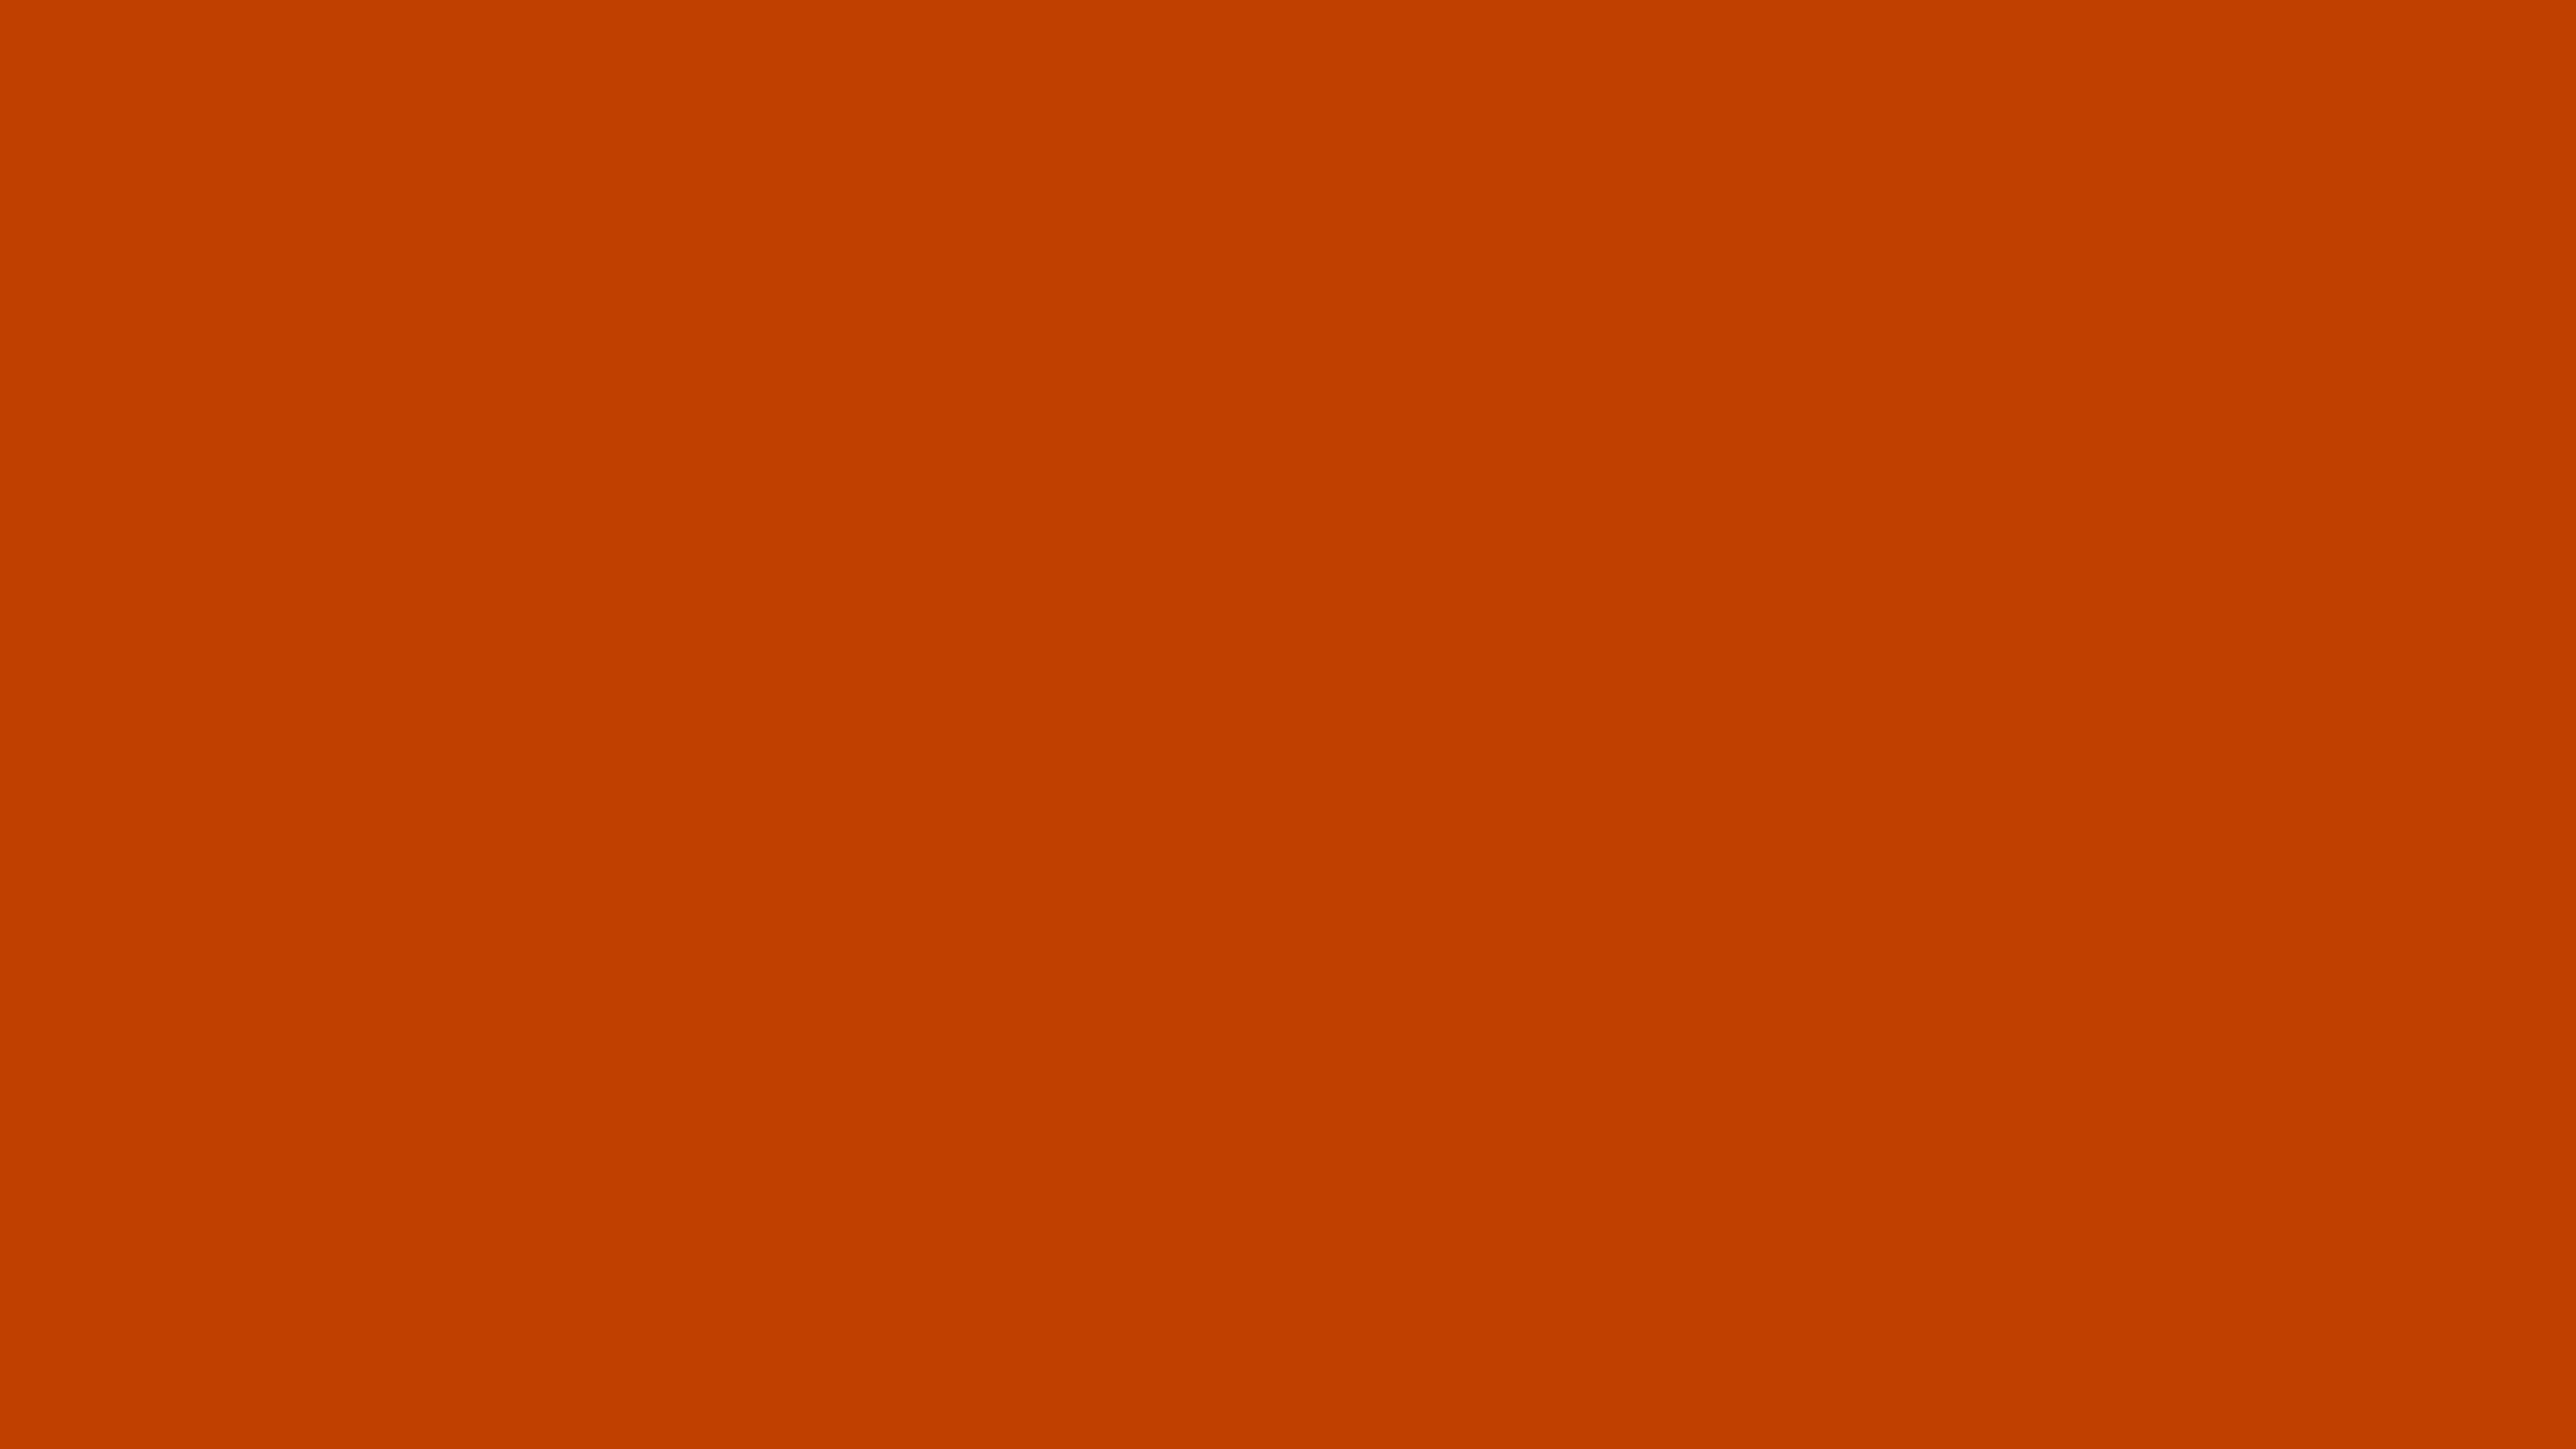 4096x2304 Mahogany Solid Color Background